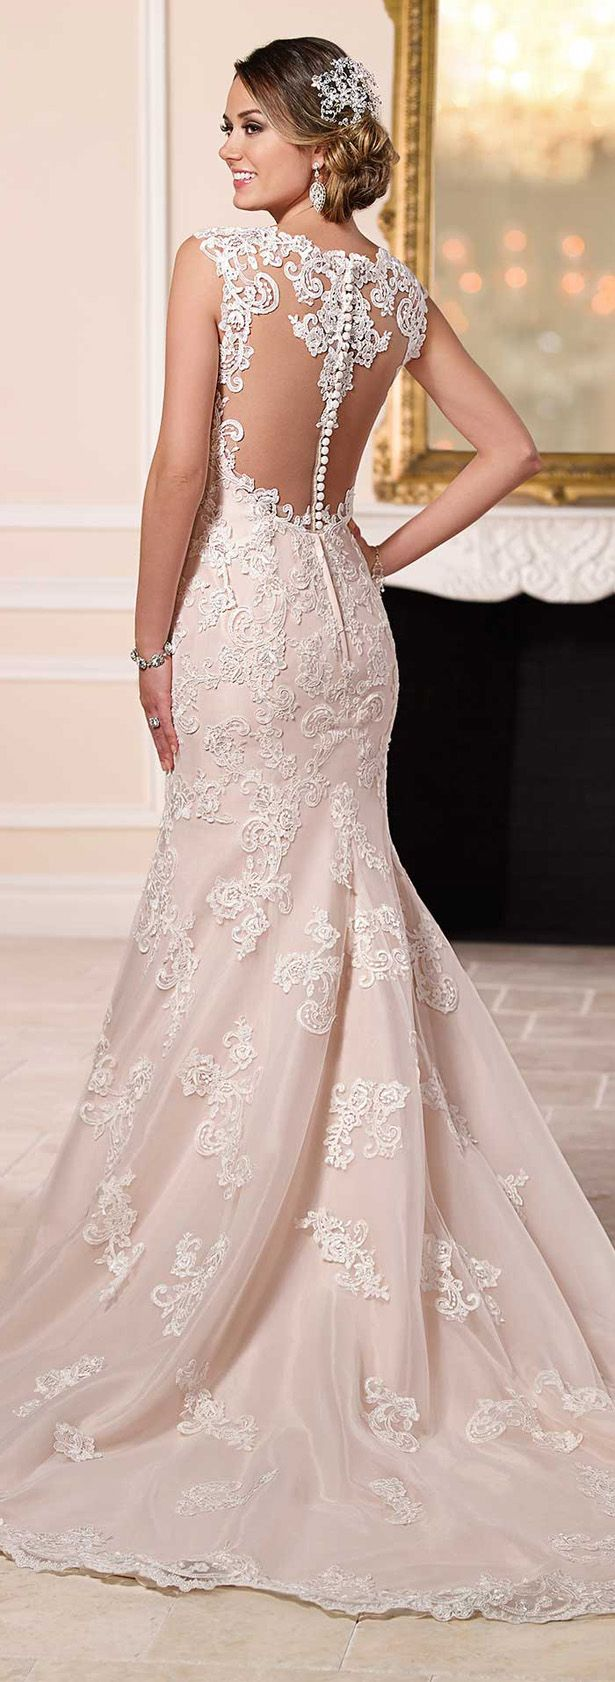 Best 25 Blush Wedding Dresses Ideas Only On Pinterest